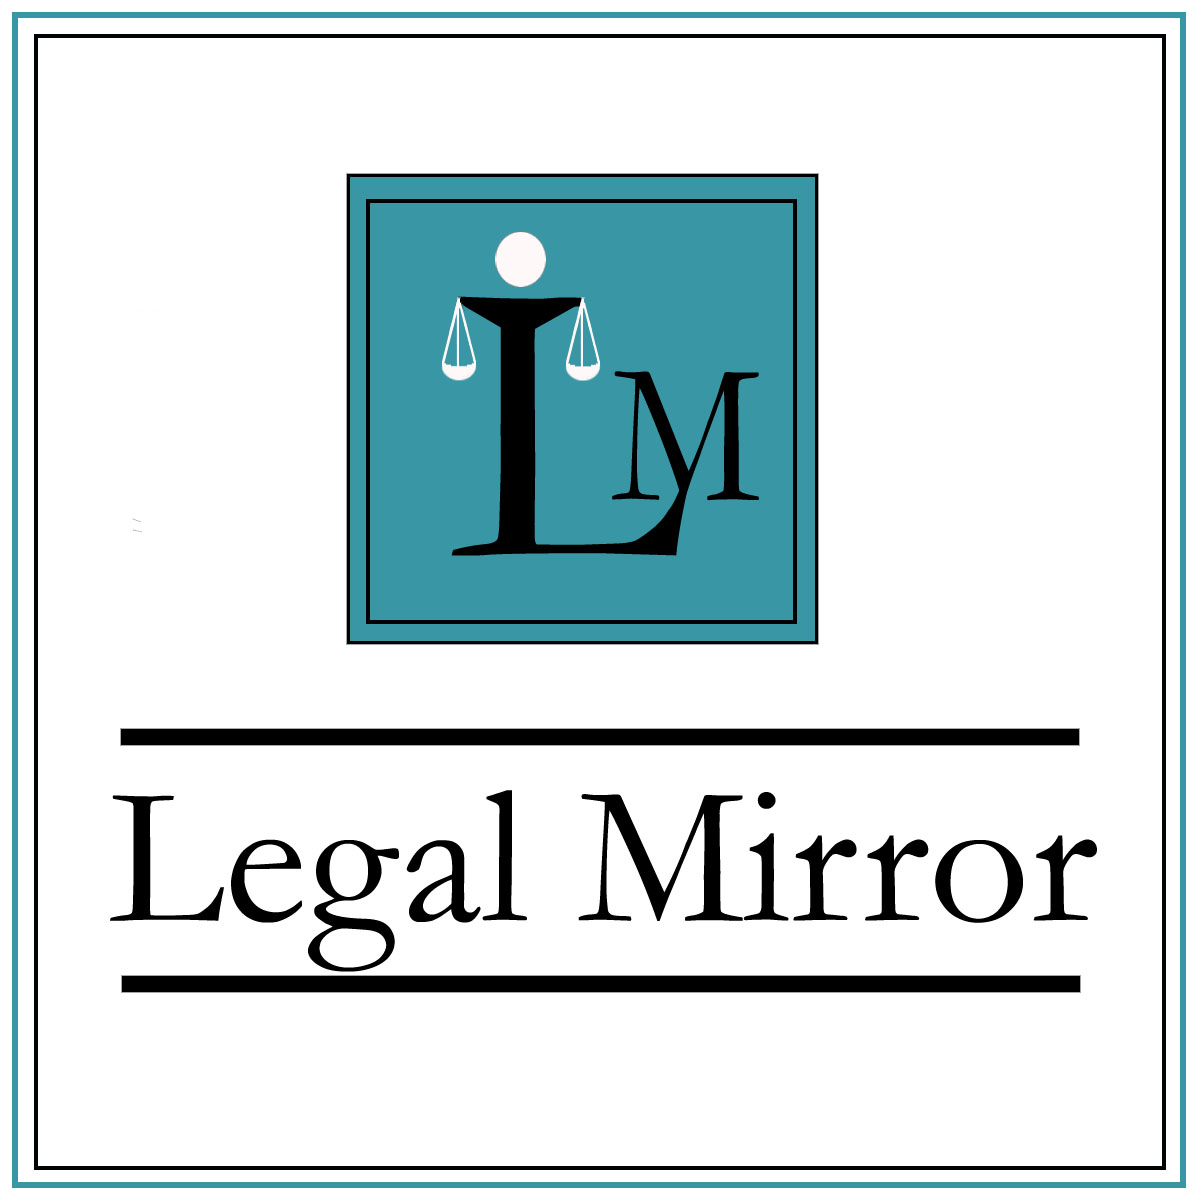 Call for Papers: Legal Mirror Volume 5, Issue 1 [Publication Fee Rs. 1600]: Submit by Oct 5